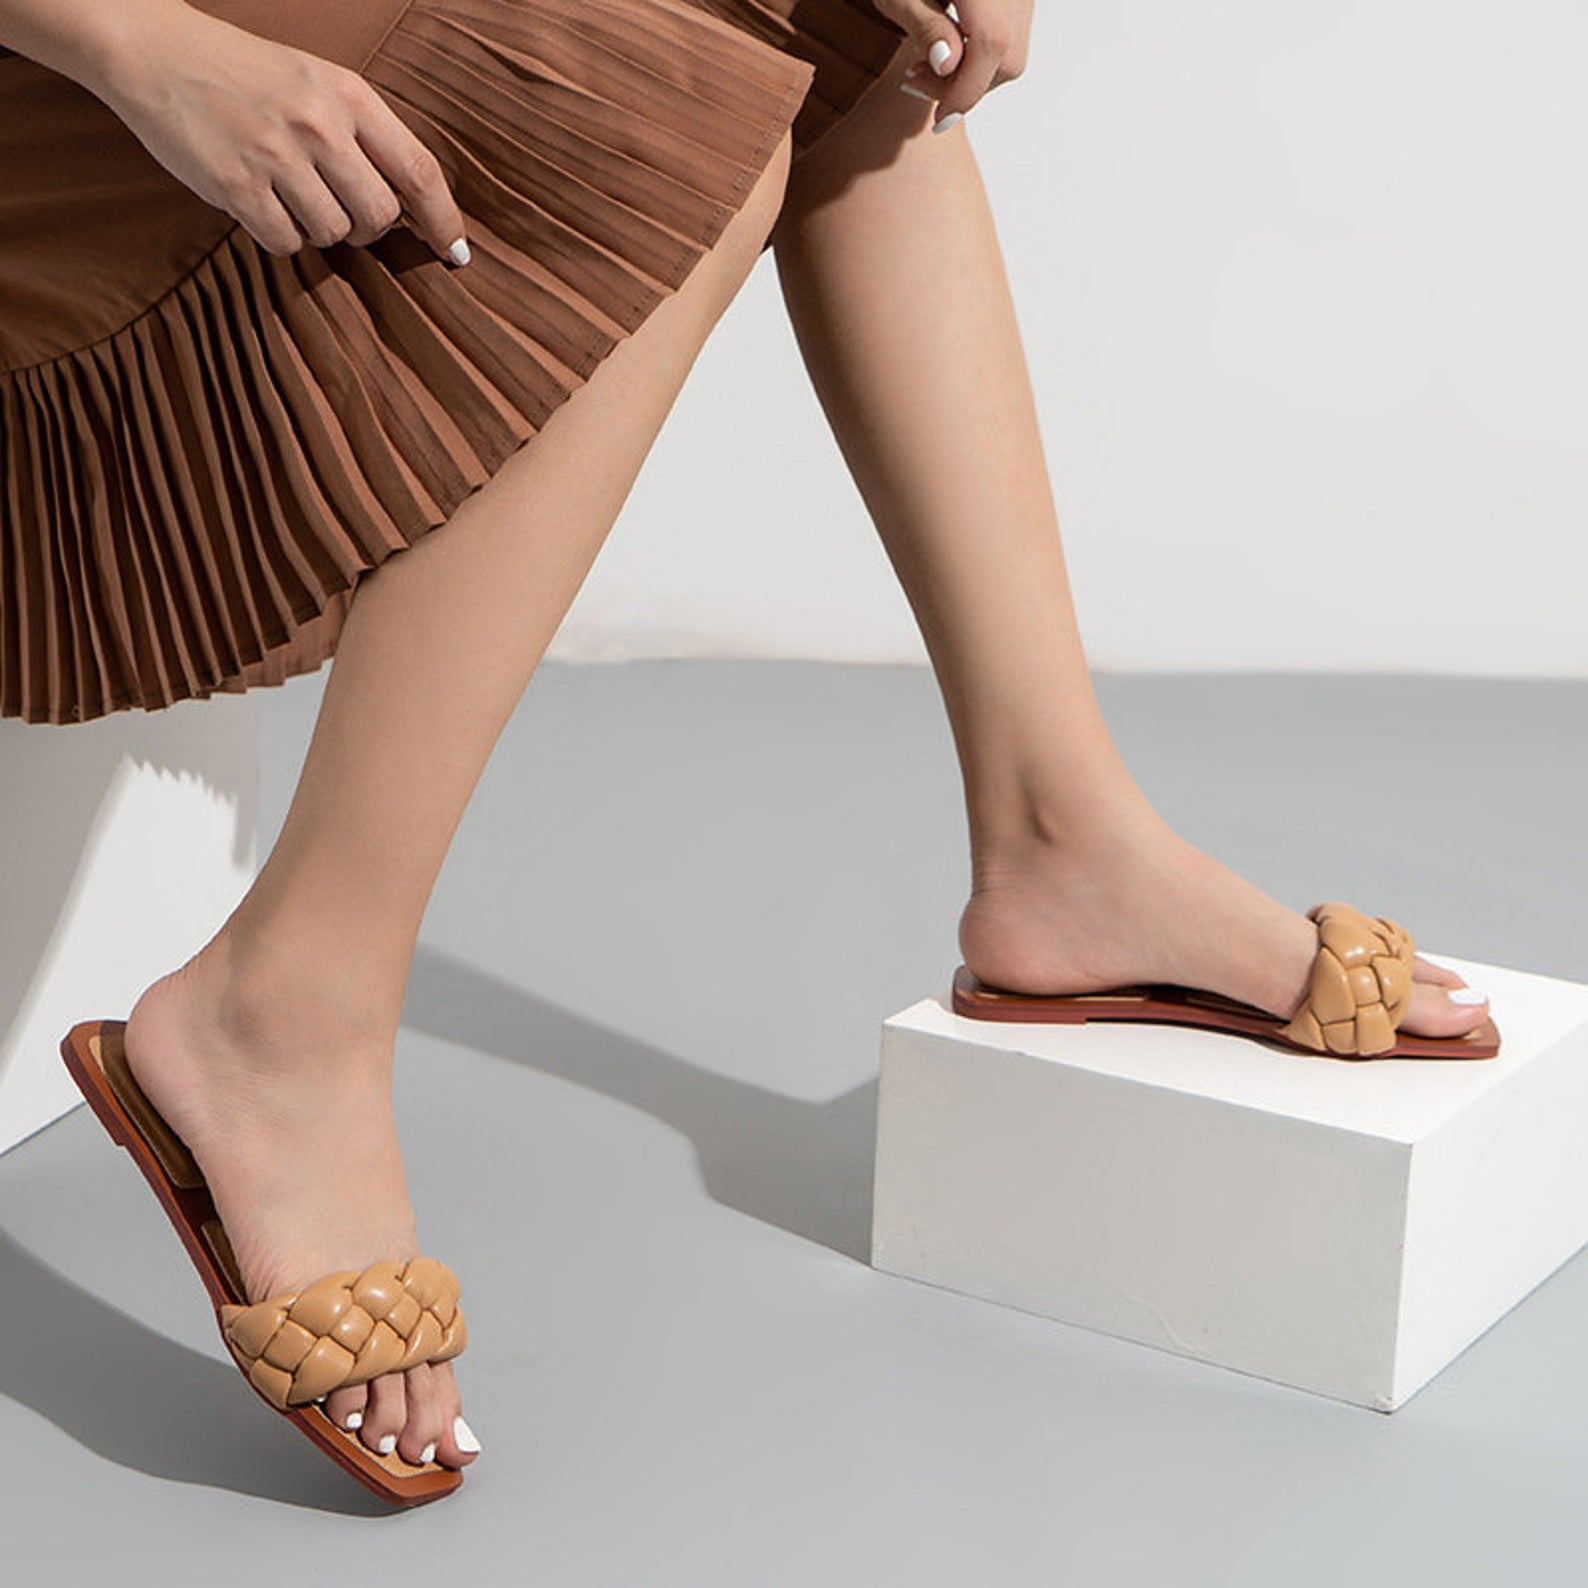 Woman wearing Square Open Toe Flat Sandals Comfortable Slip On Mule Slides Sandals with Braided Strappy Slipper Casual Shoes